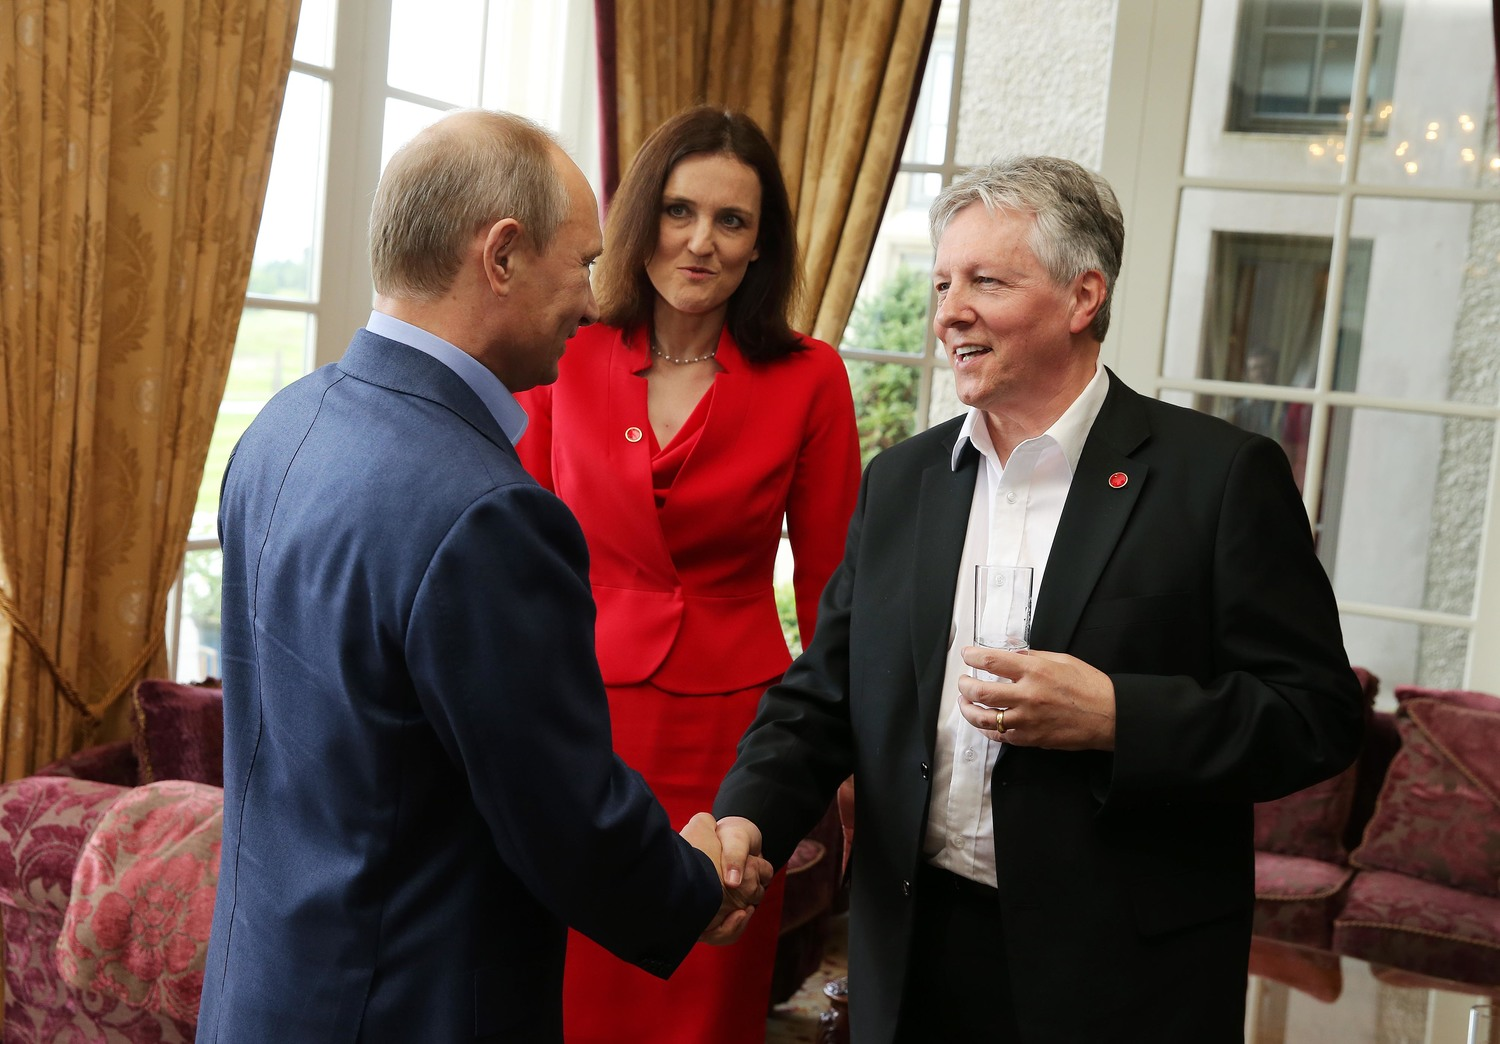 Vladimir Putin meets Peter Robinson while his Russian delegation searches for a satellite site in Clogher